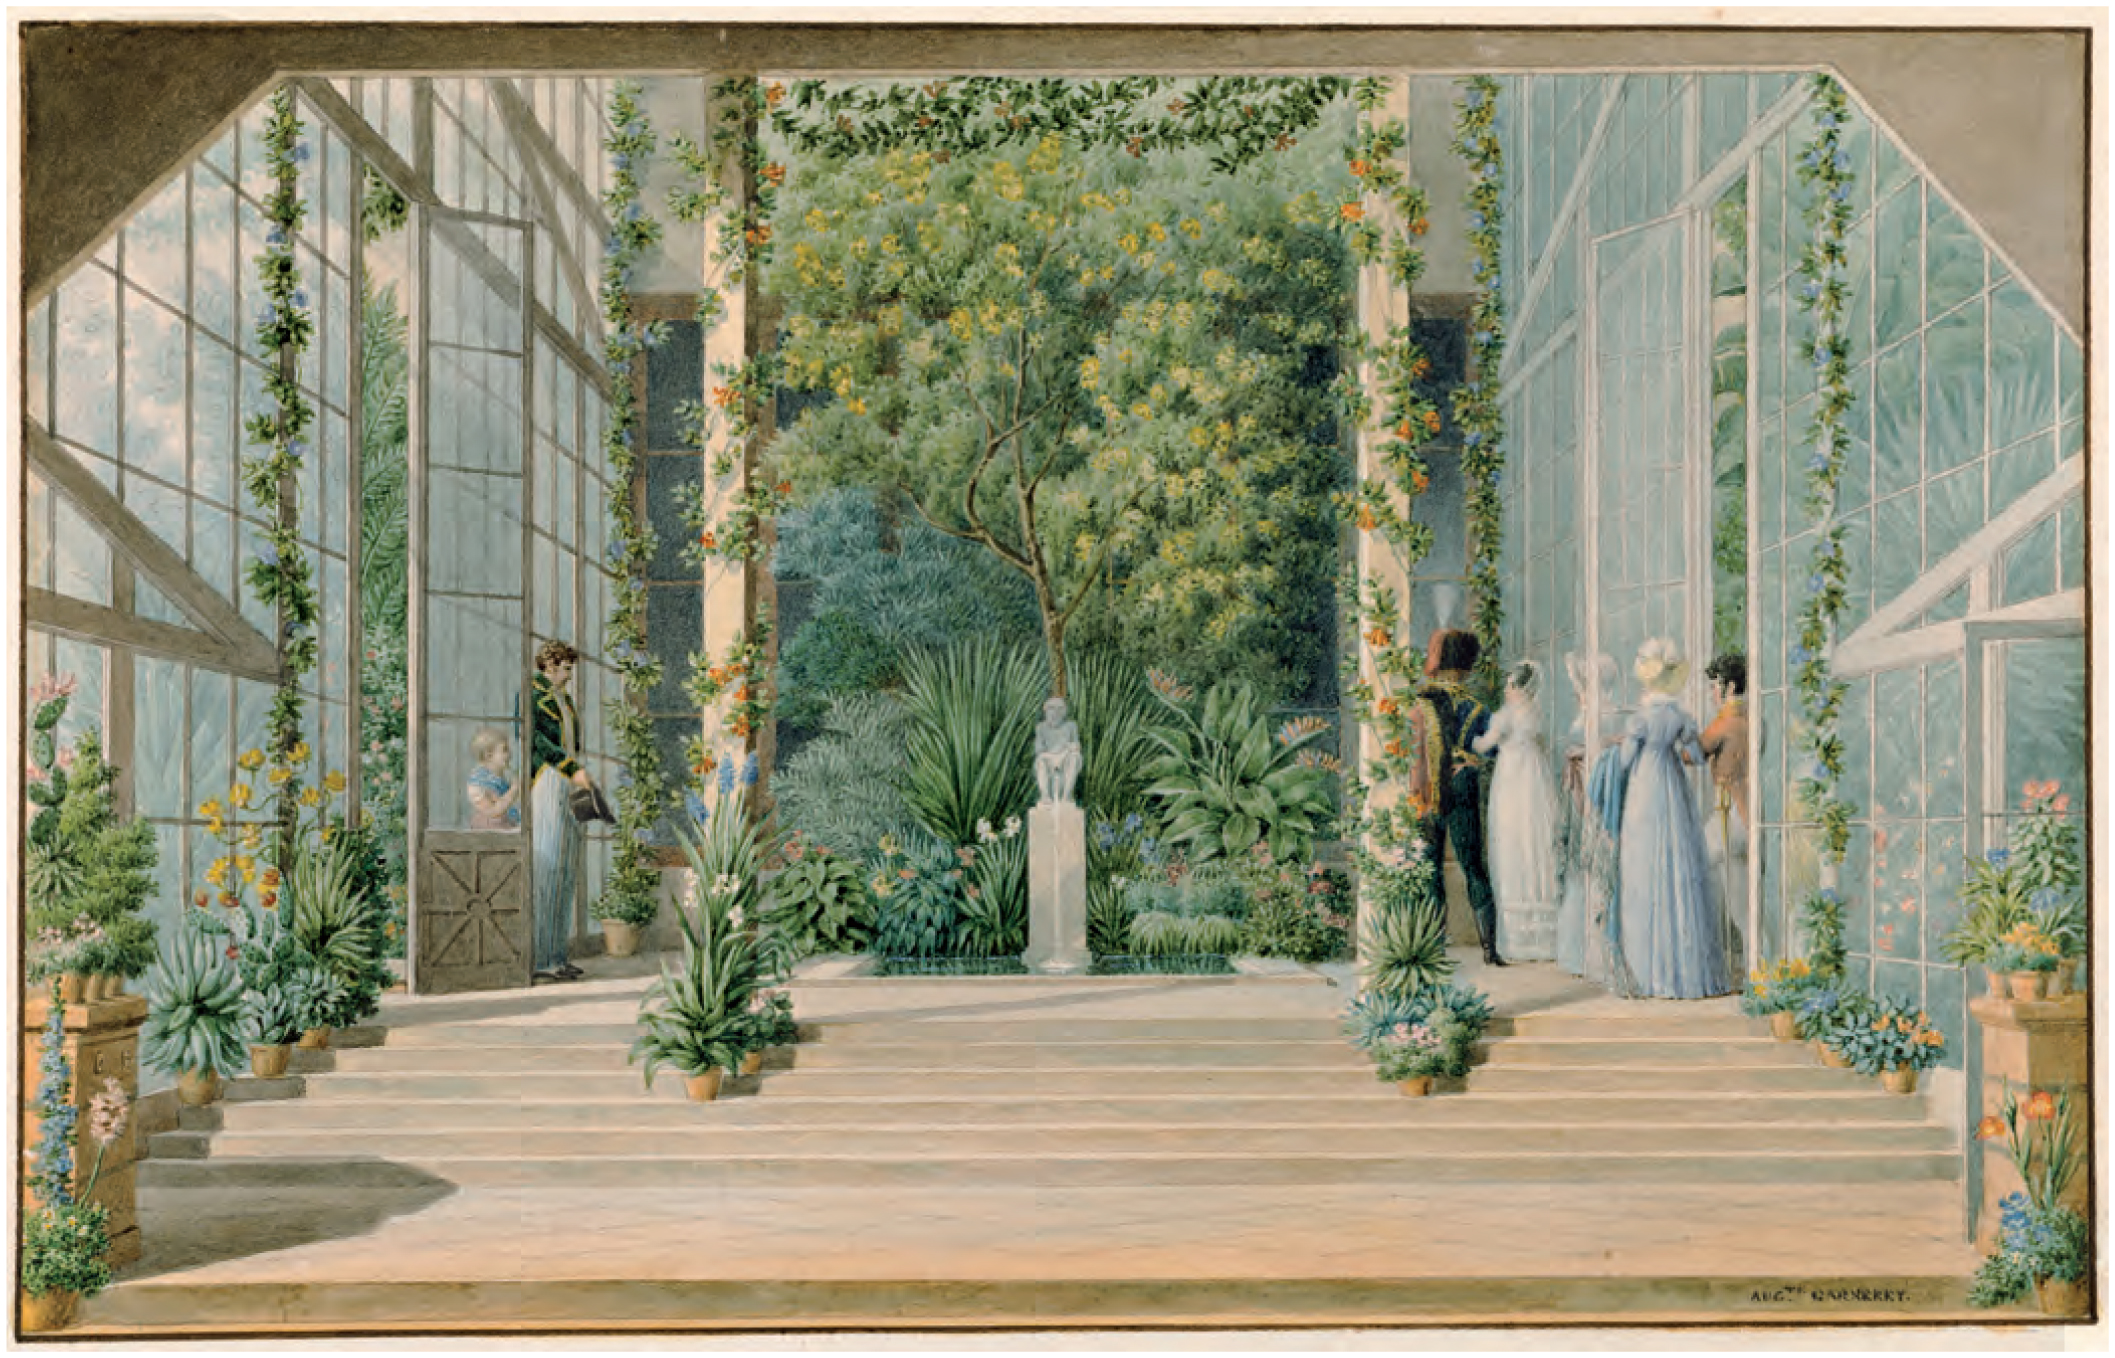 Etienne-Pierre Ventenat (1757–1808) and the gardens of Cels and Empress Joséphine